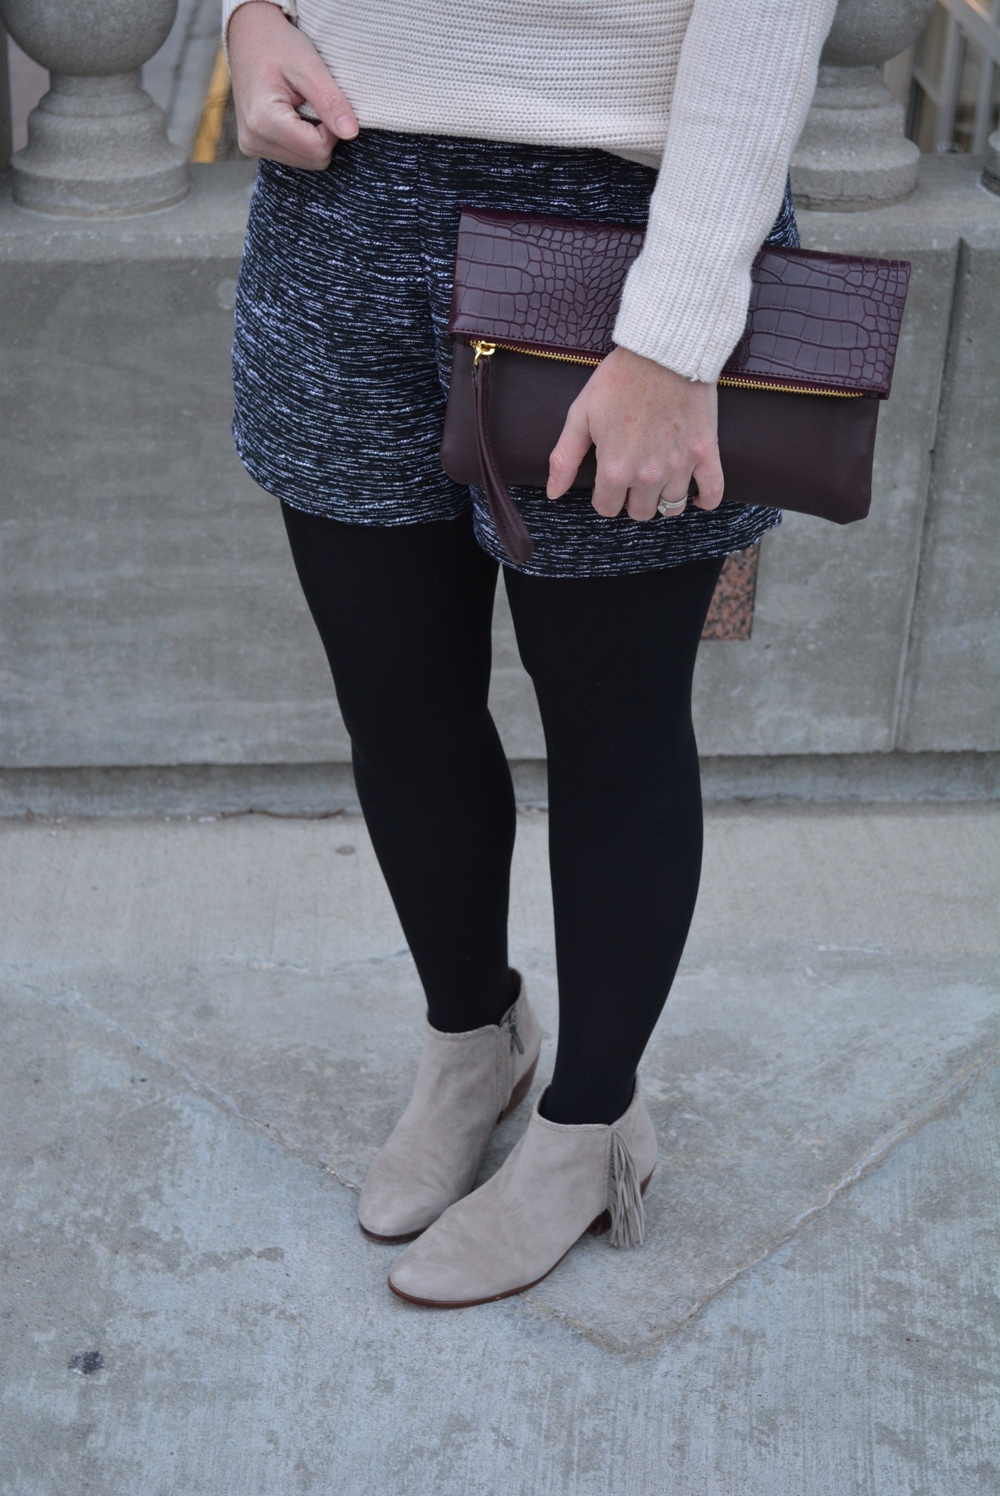 Old Navy cream sweater with tweed shorts and tights for holiday party #oldnavystyle